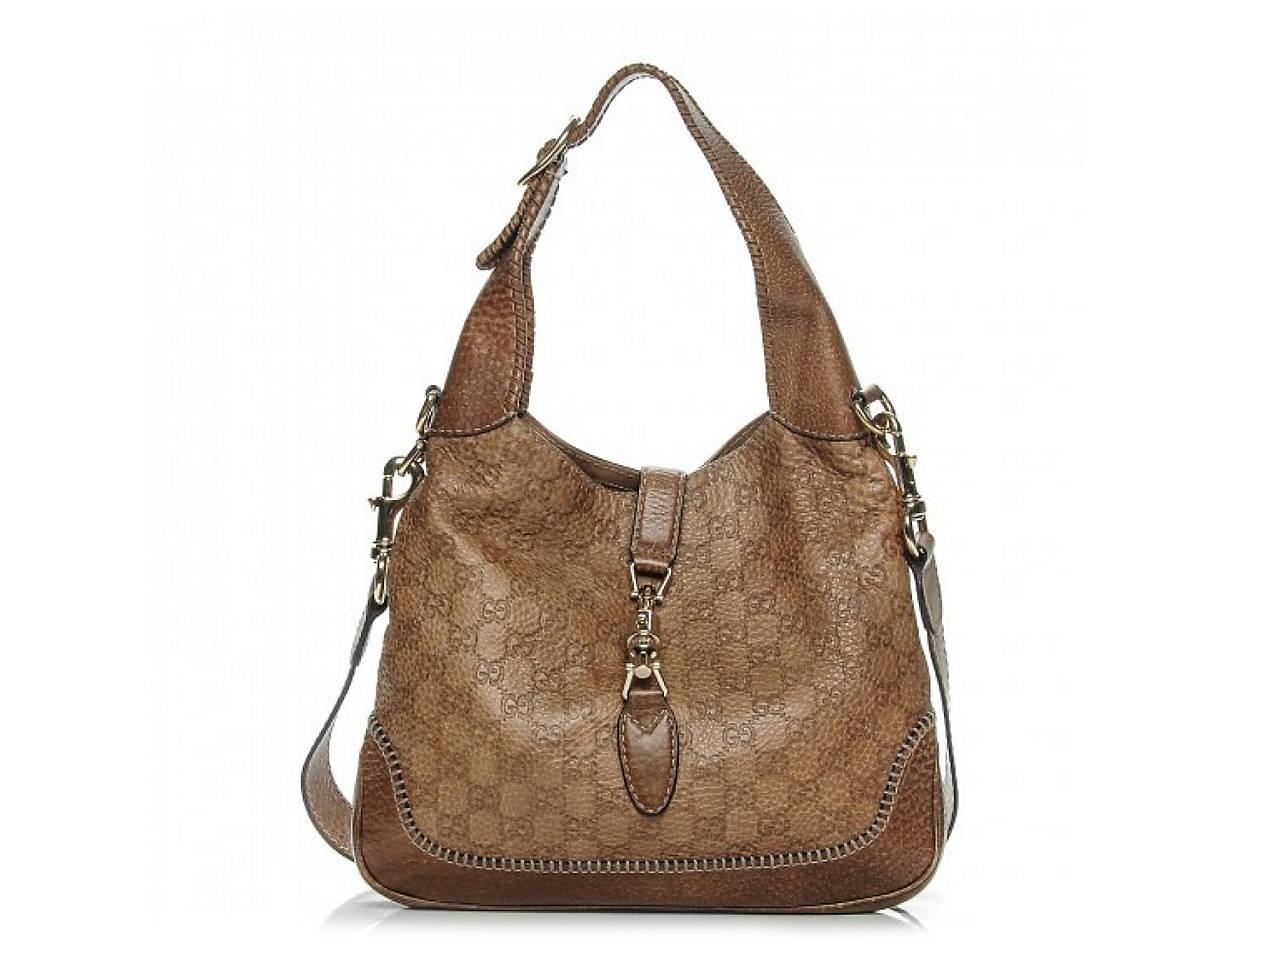 39107bef63e Gucci - Vintage Luxury Guccissima New Jackie Leather Shoulder Bag ...